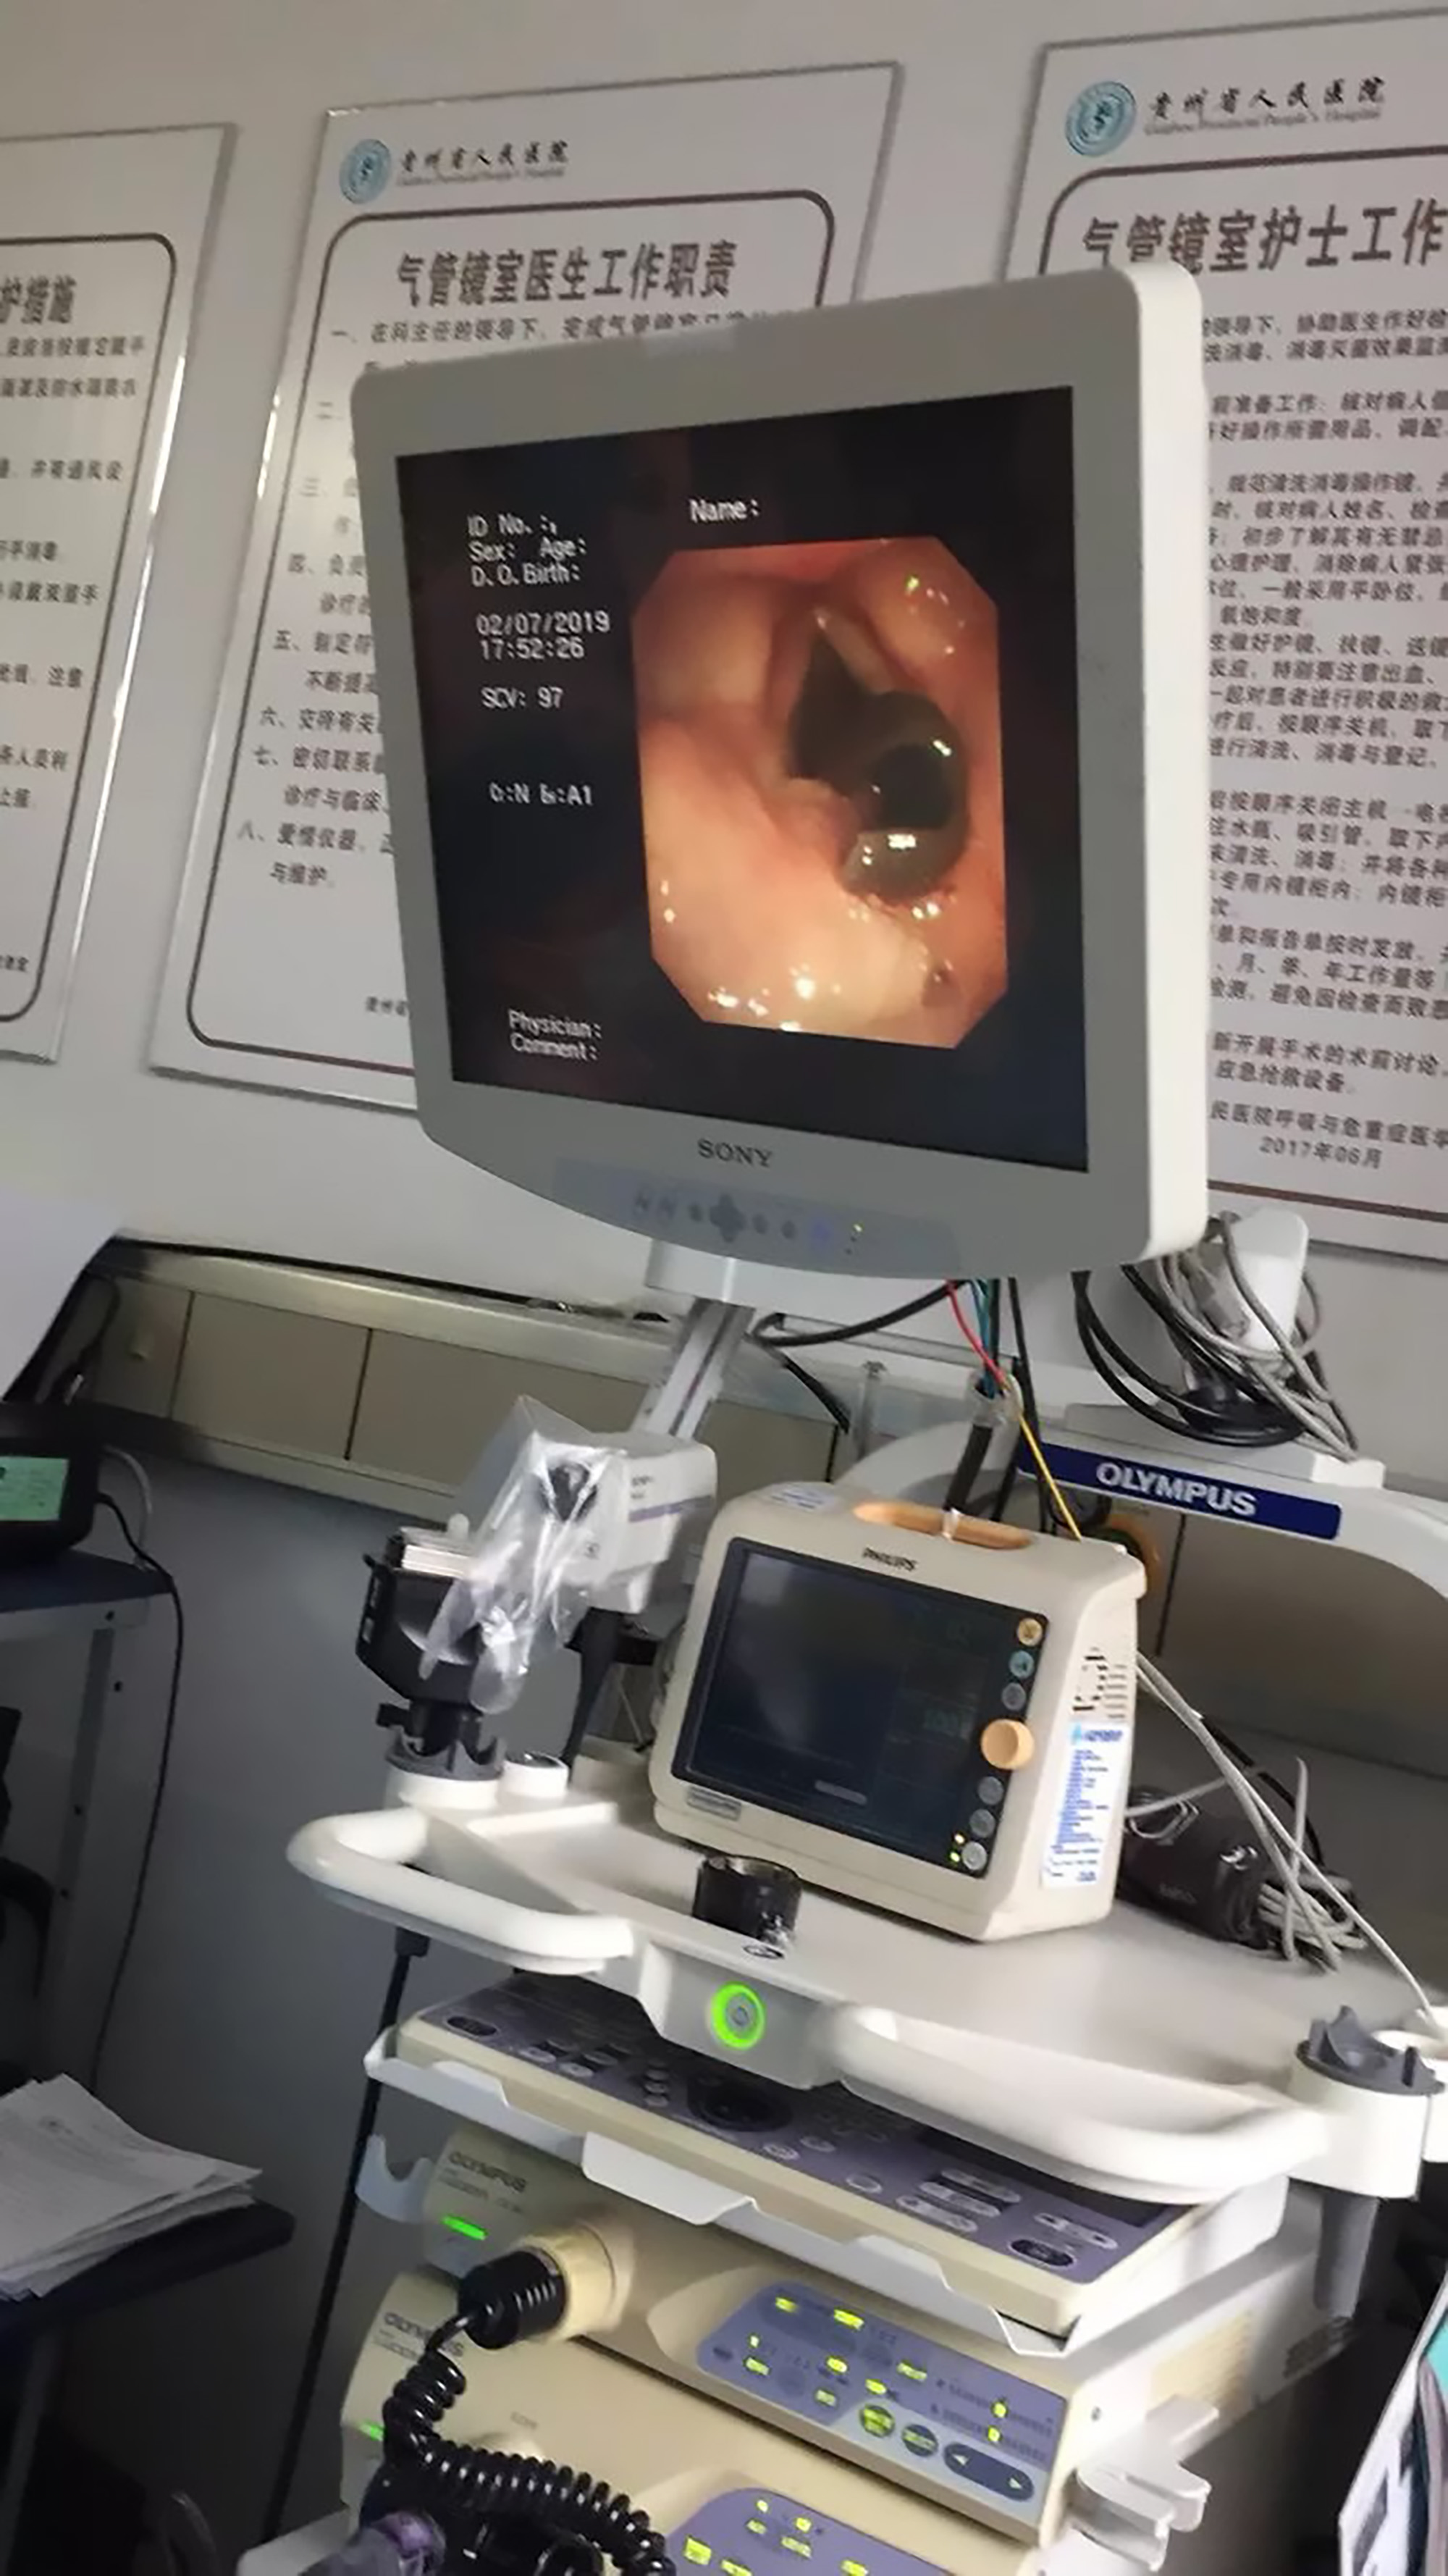 Doctors froze the parasite with dry ice before removing it. Credit: AsiaWire